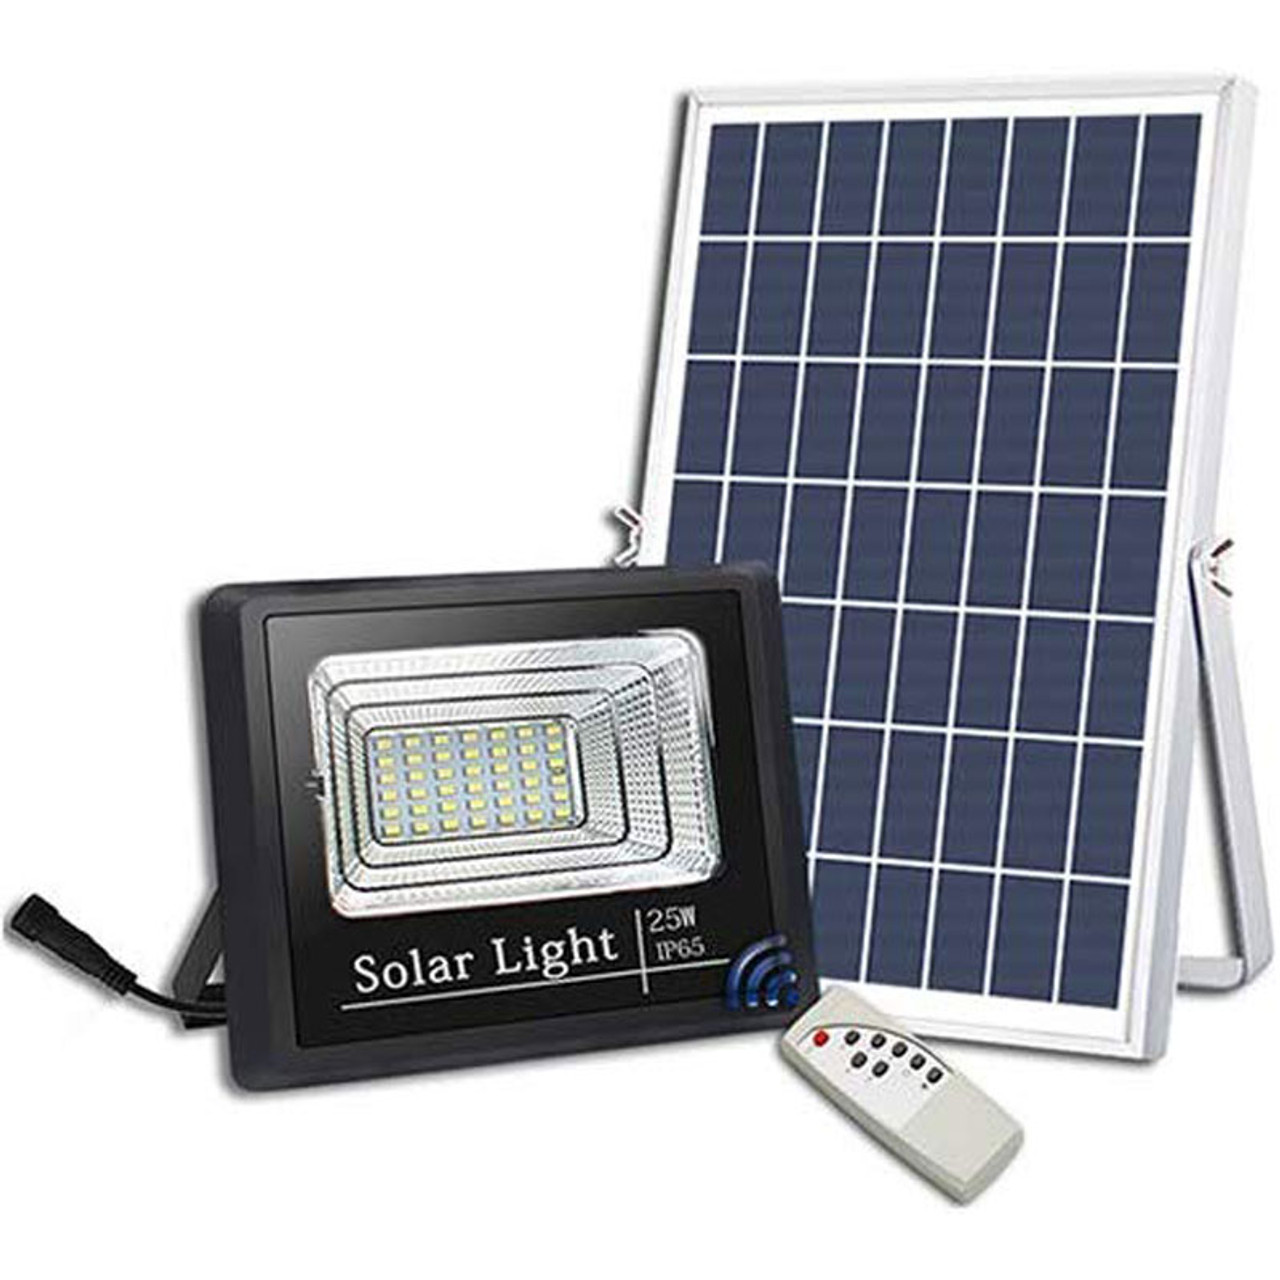 Led Solar Flood Light High Output 25 Watt With Solar Panel Dimmable Timer Remote Control Ip67 6000 Kelvin Five Year Warranty Led Global Supply